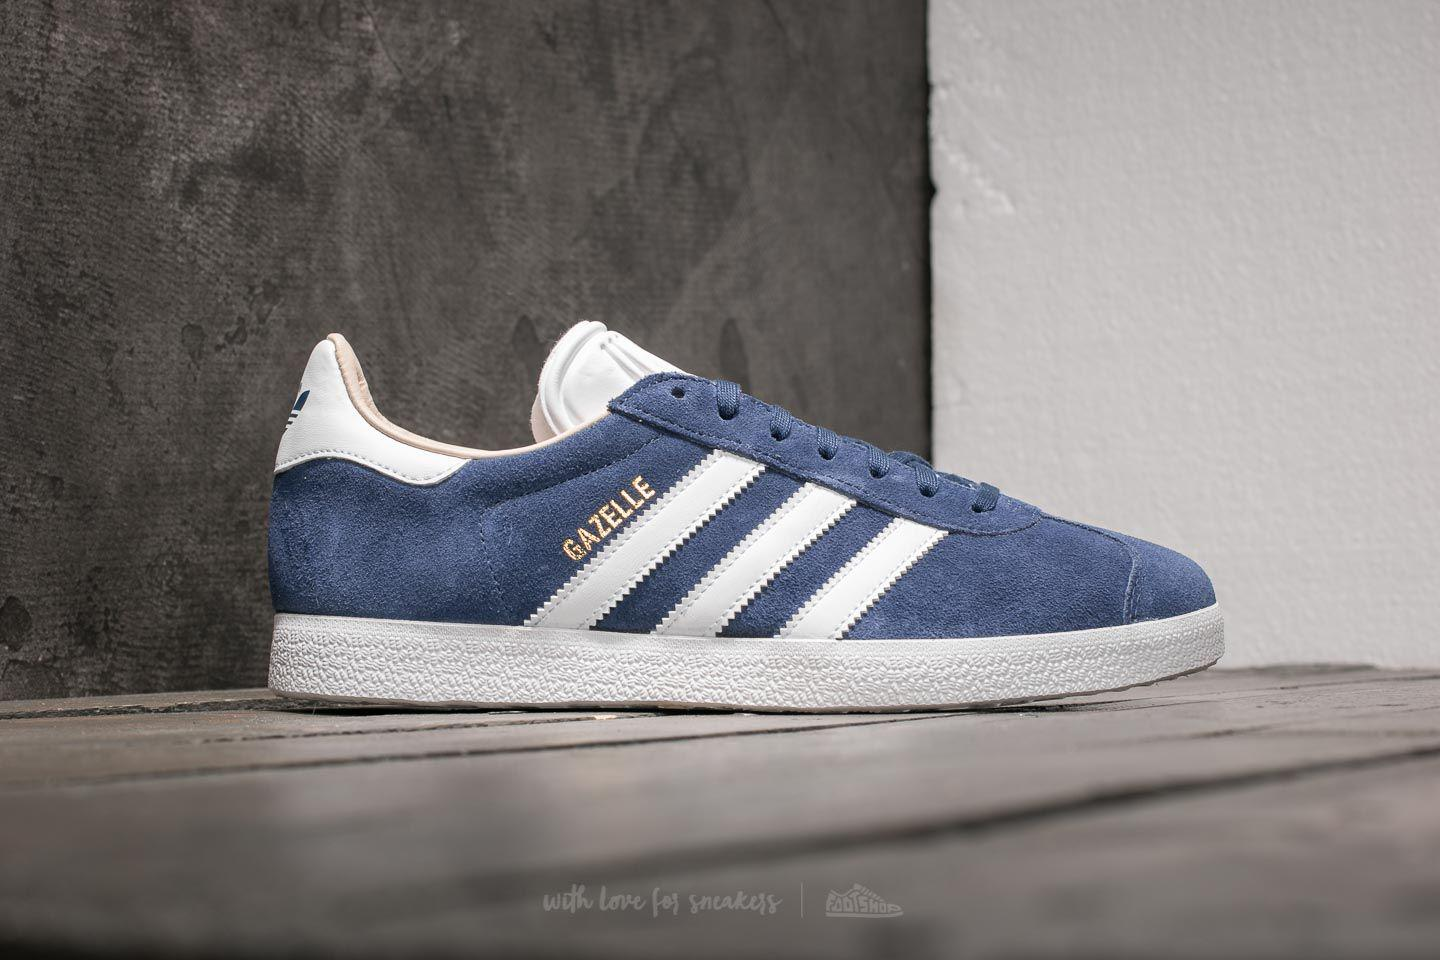 wholesale dealer e1cd0 decc6 Gallery. Previously sold at Footshop · Womens Adidas Gazelle ...